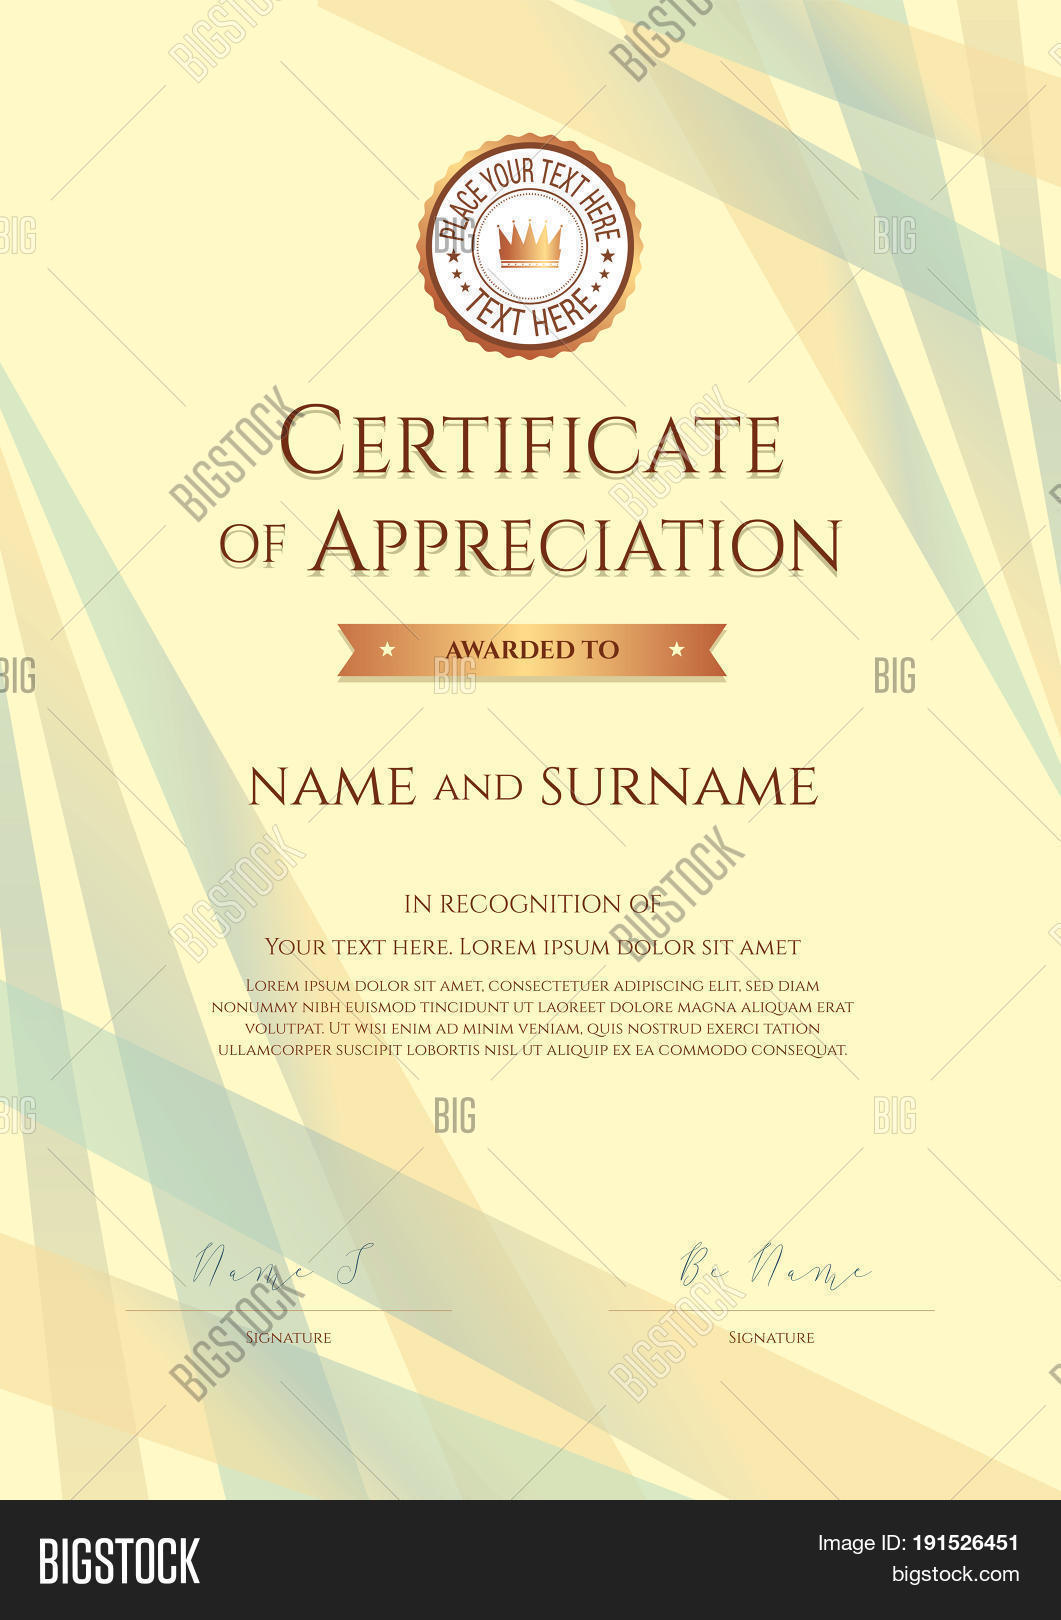 Portrait certificate appreciation vector photo bigstock portrait certificate of appreciation template with award ribbon on abstract ribbon background yelopaper Images